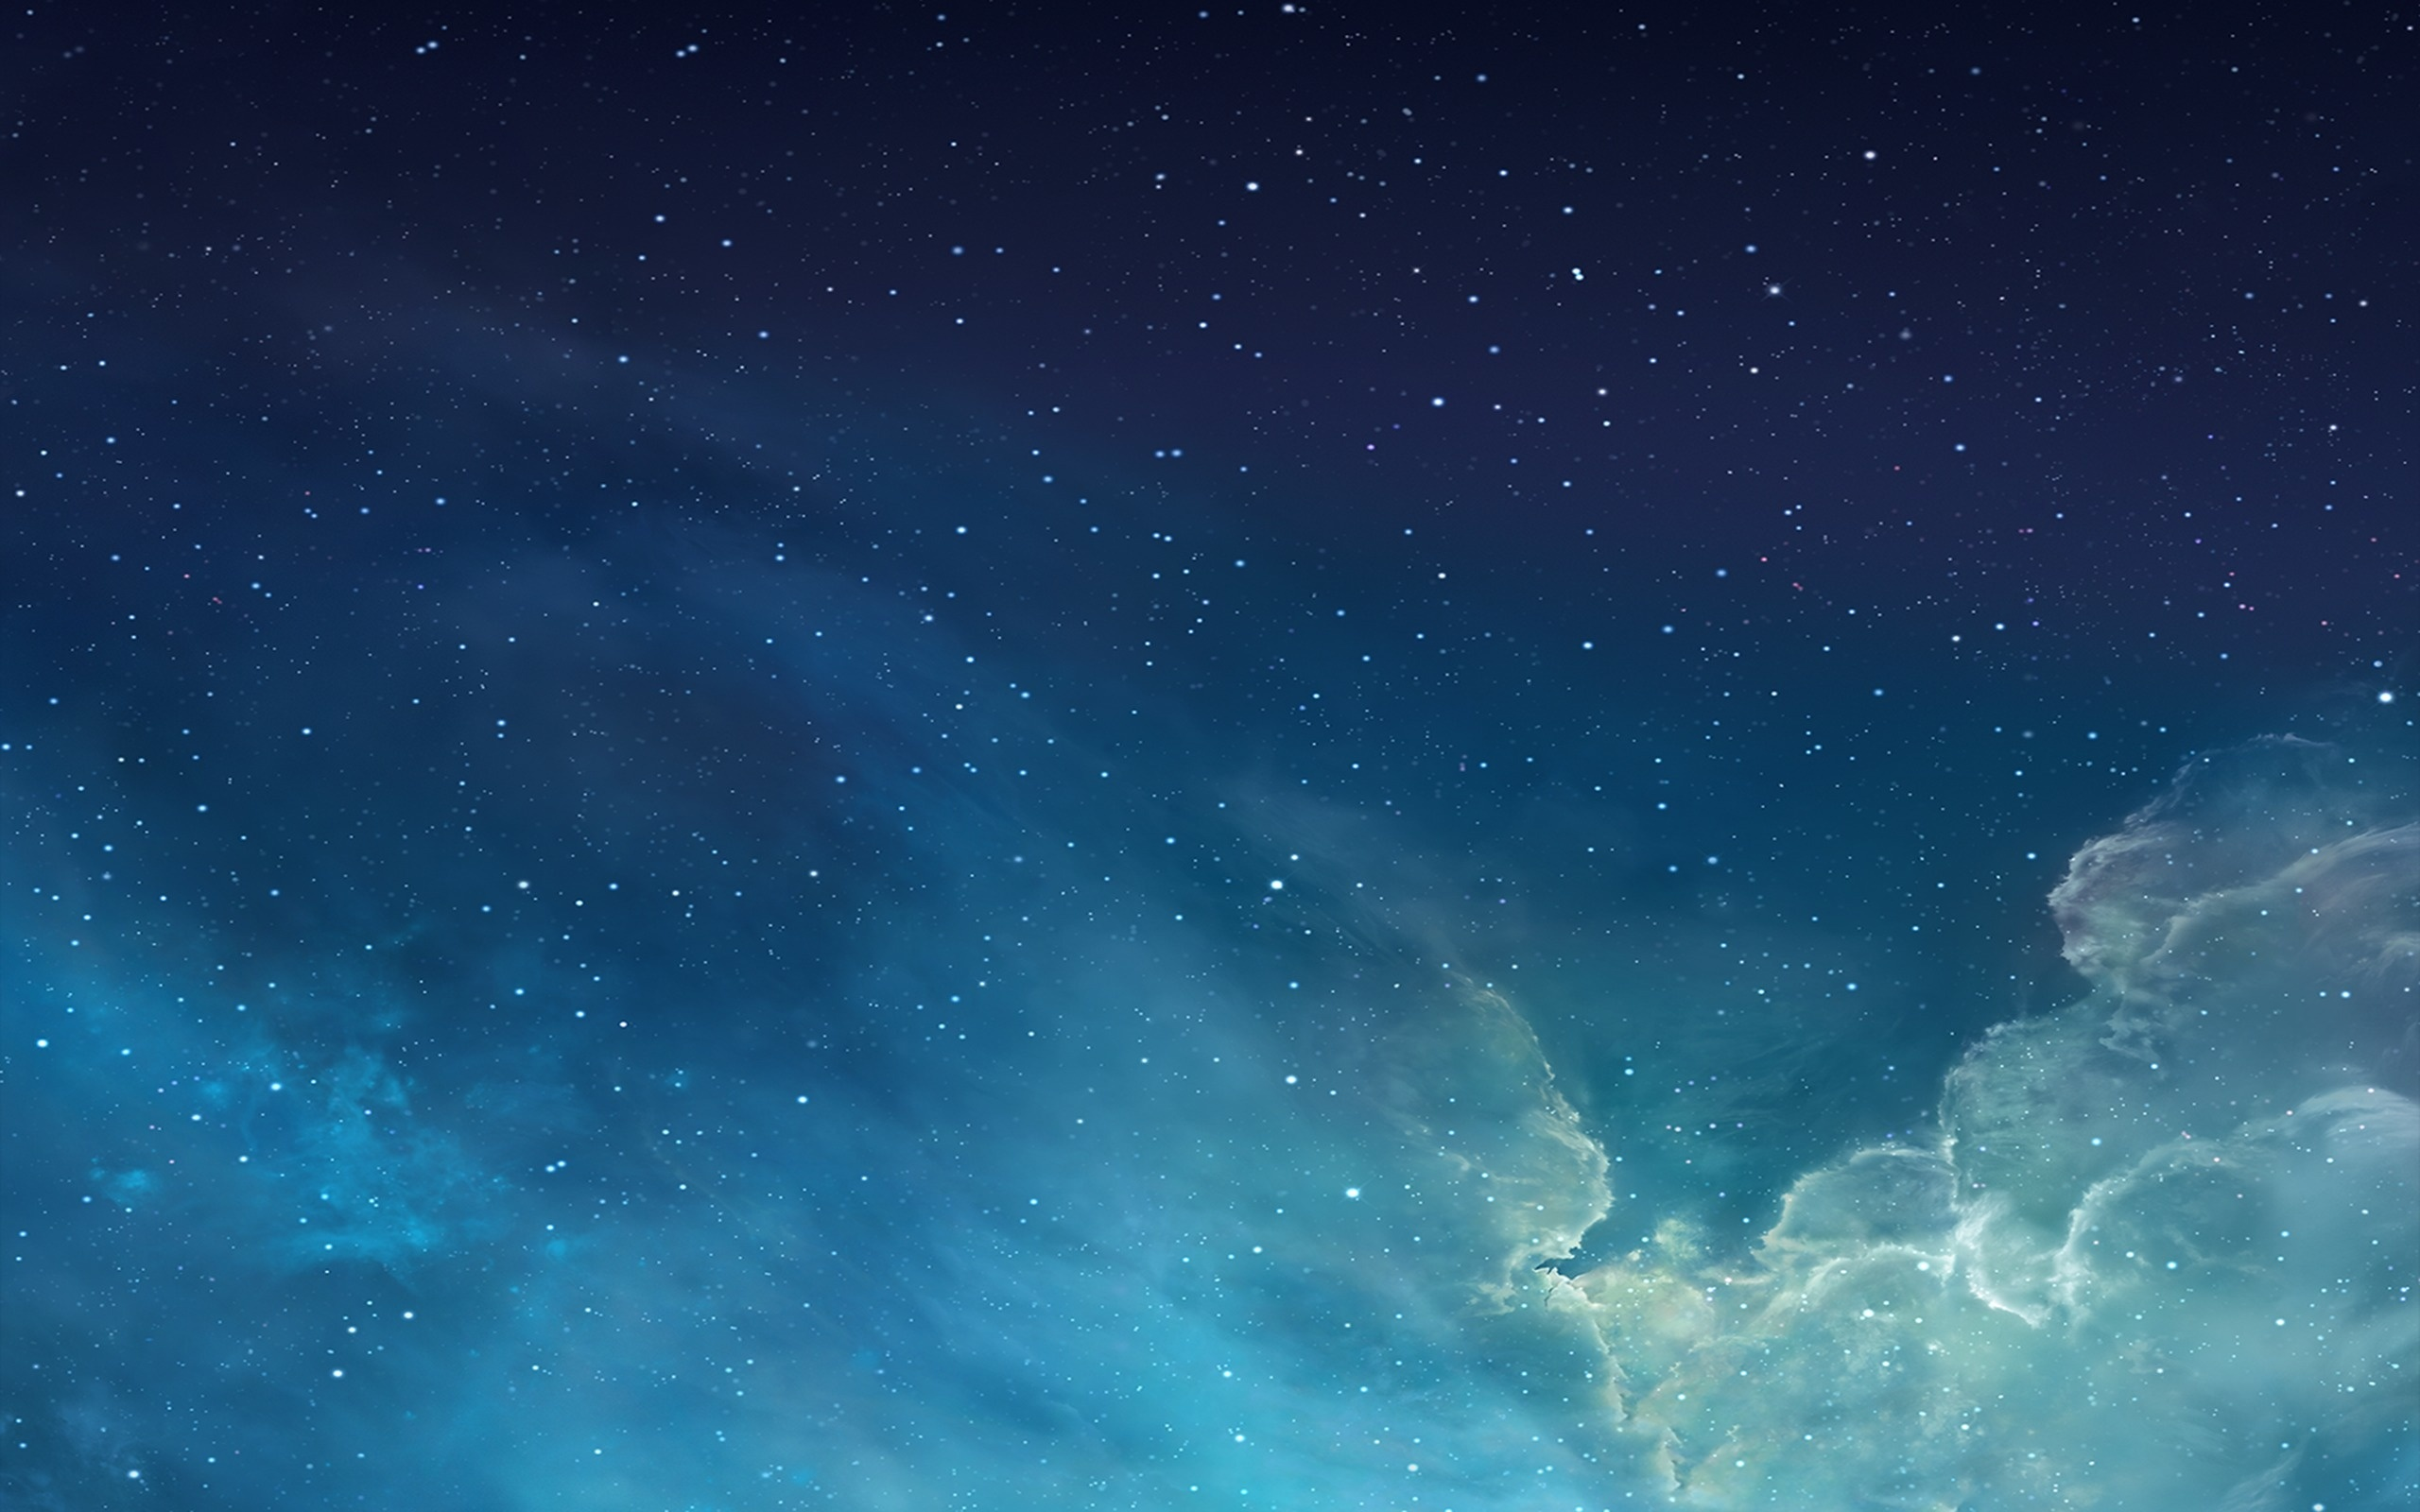 Iphone best stunning apple blue ios sky stars clouds nebula space in addition Ponderosa Pine further Outer space stars also Cherry flowers branch spring blossom blossoms furthermore Ant. on small nature